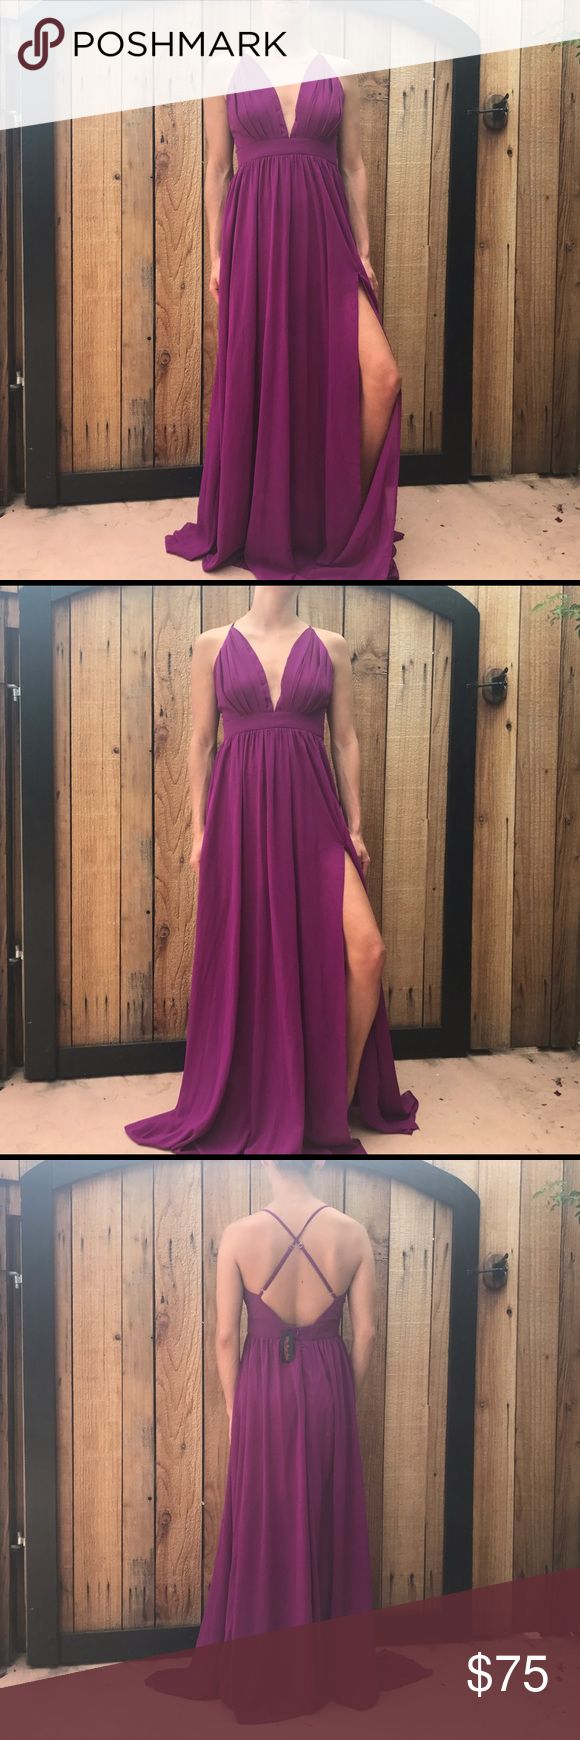 Hot Miami Styles Formal Dress🎉30% OFF ANY BUNDLE New with tags hot Miami styles dress. Adjustable straps, side slit. Bundle and save. No trades   #hotmiamistyle #hms #prom #formaldress #maxi #longdress Hot Miami Styles Dresses Wedding